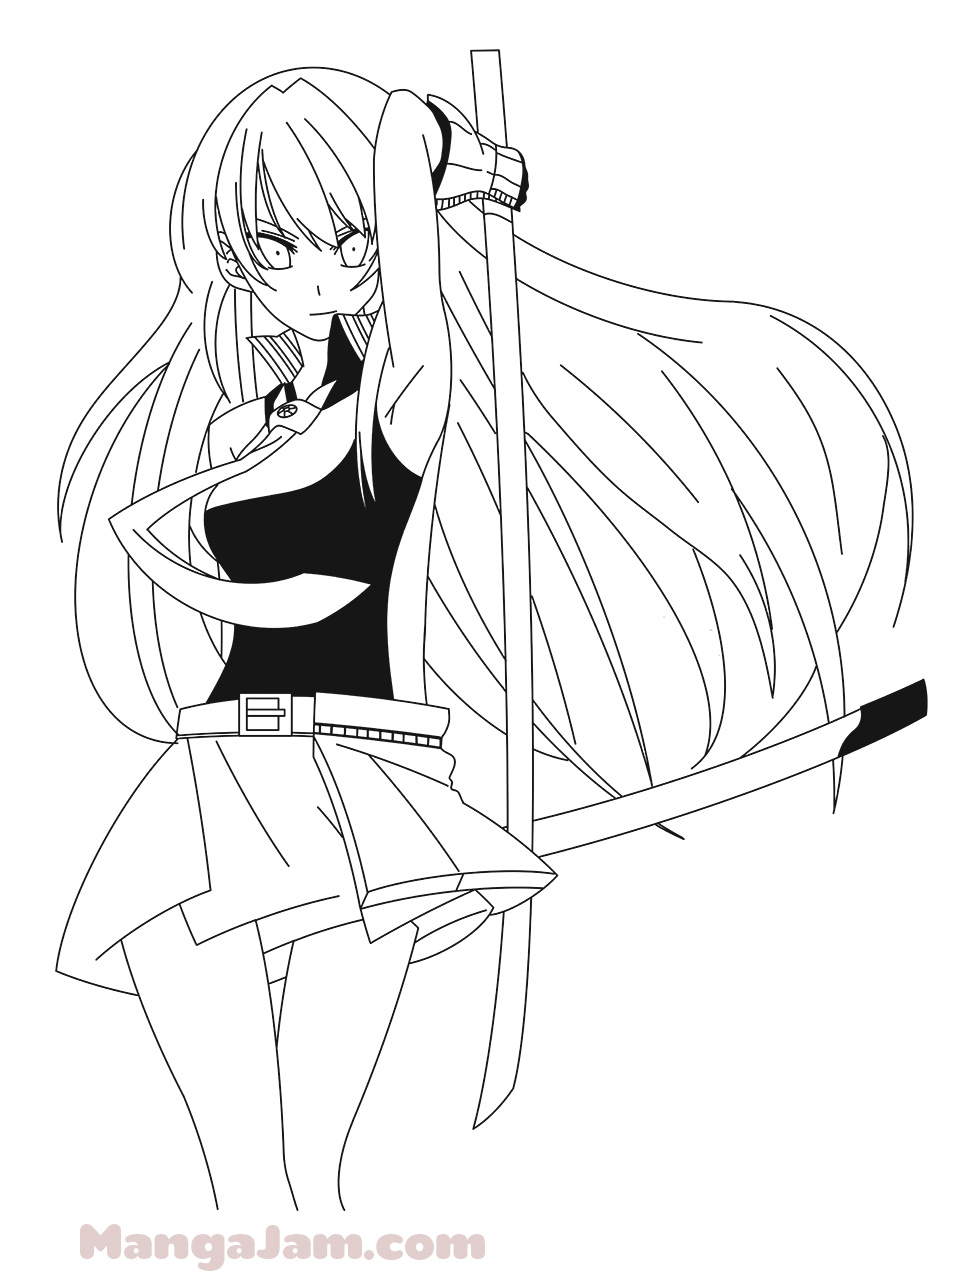 How to Draw Akame with Murasame from Akame Ga Kill